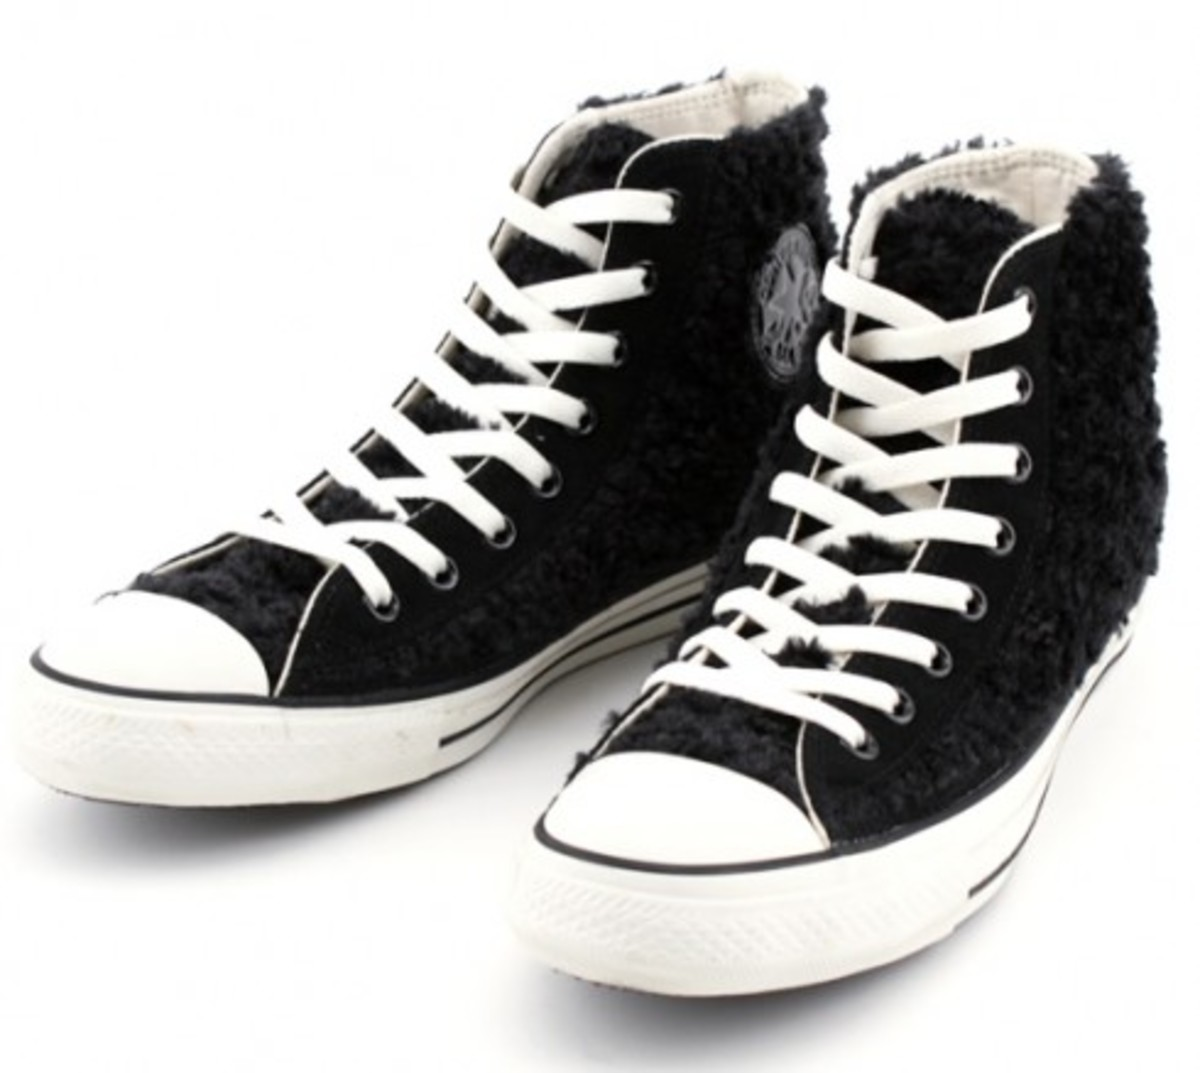 Converse - Chuck Taylor All Star Mocomoco Hi